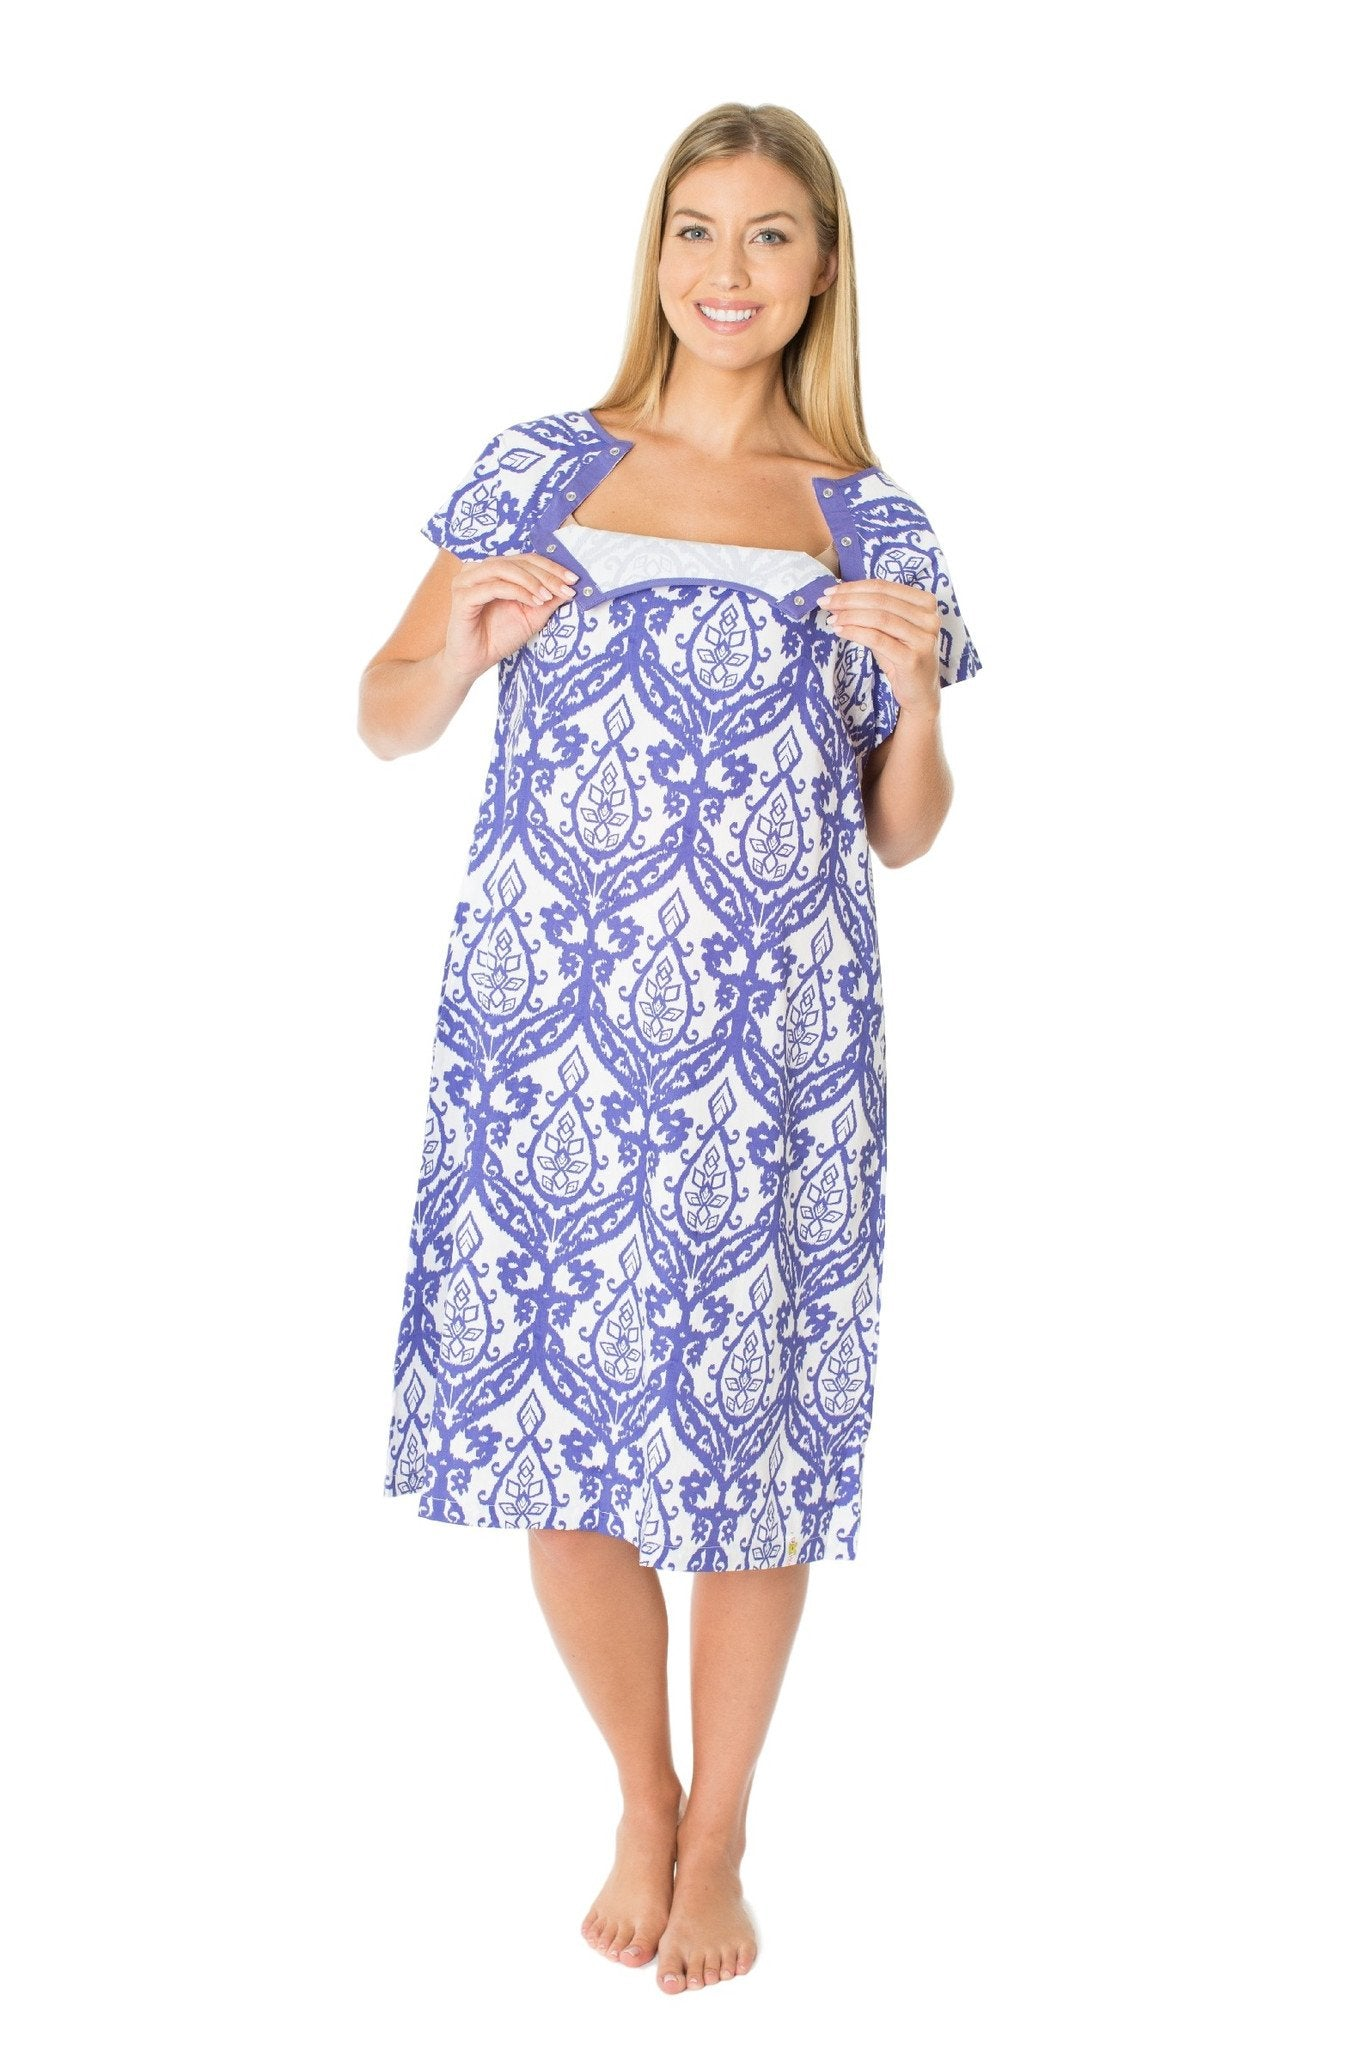 Brie Gownie Maternity Delivery Labor Hospital Birthing Gown – Gownies